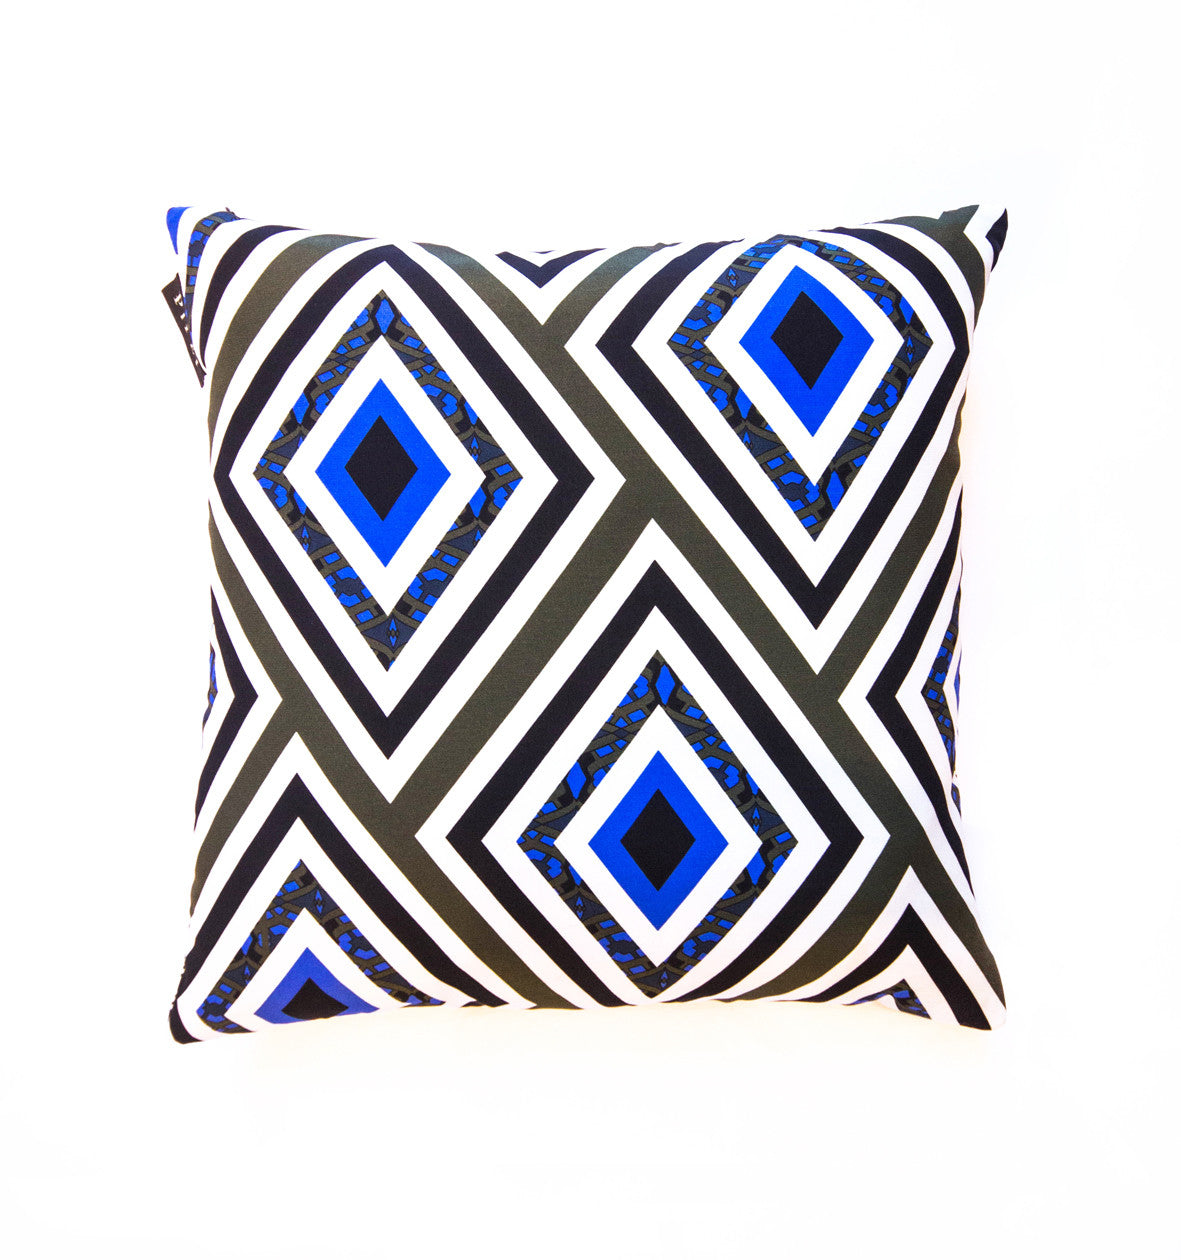 Baltard Silk Square Cushion